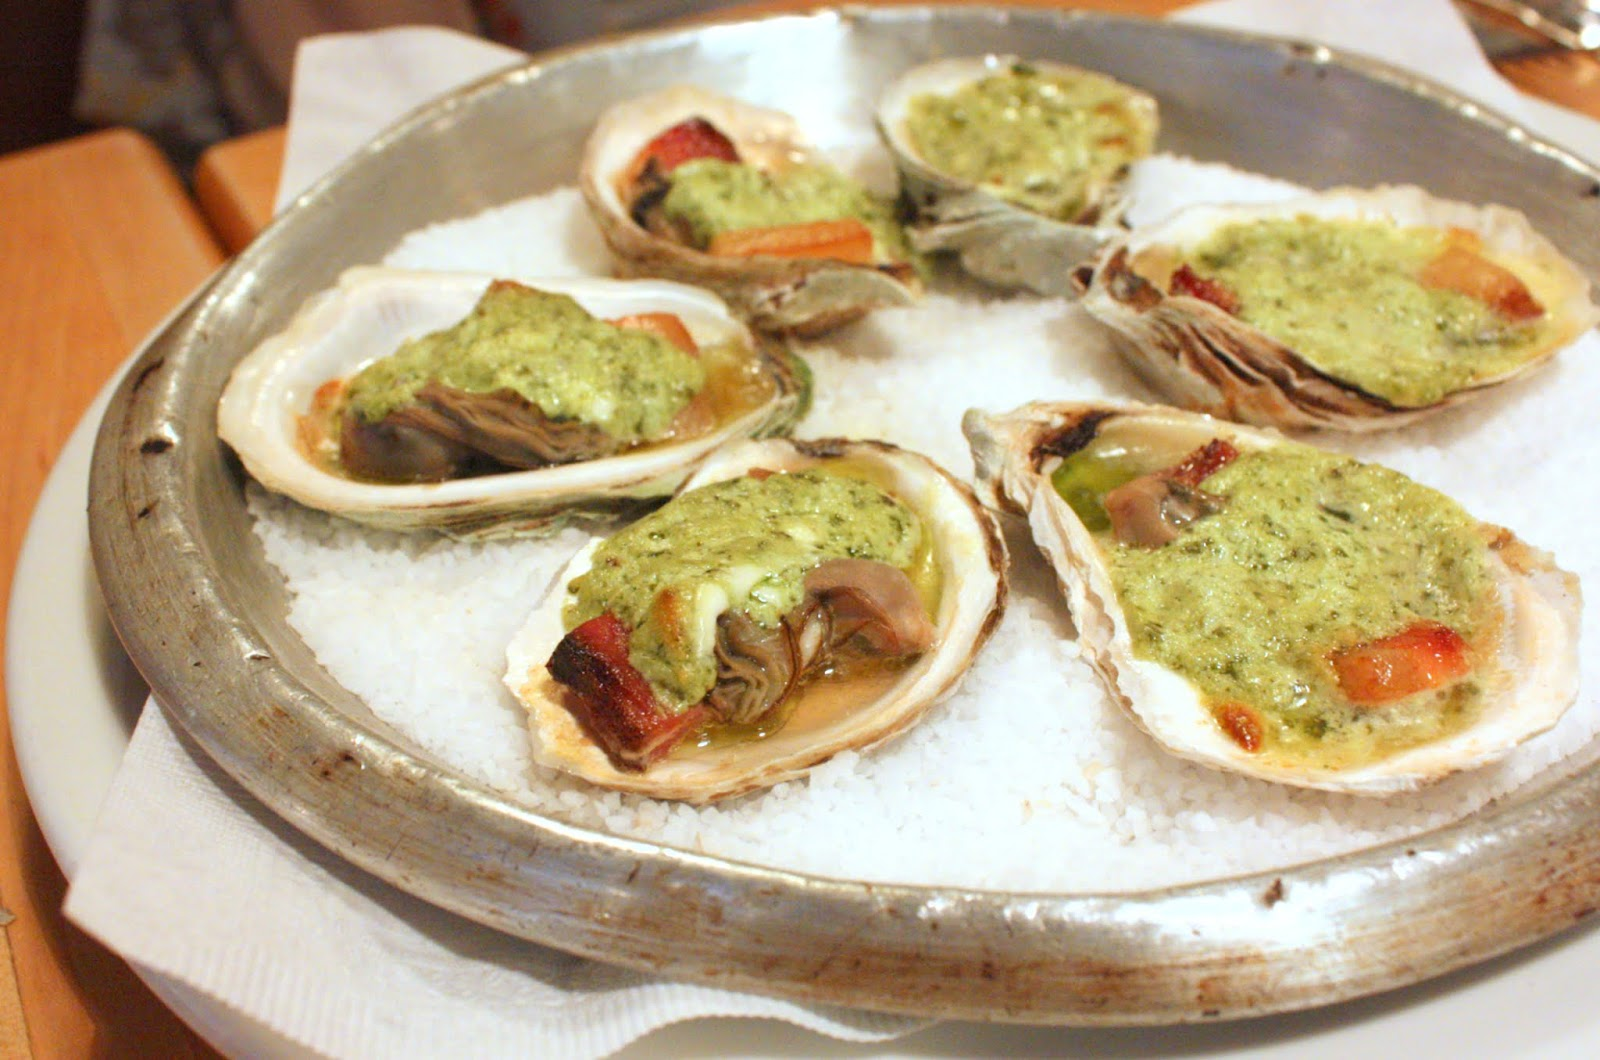 Baked Oysters With Cheese Baked oysters - double smoked